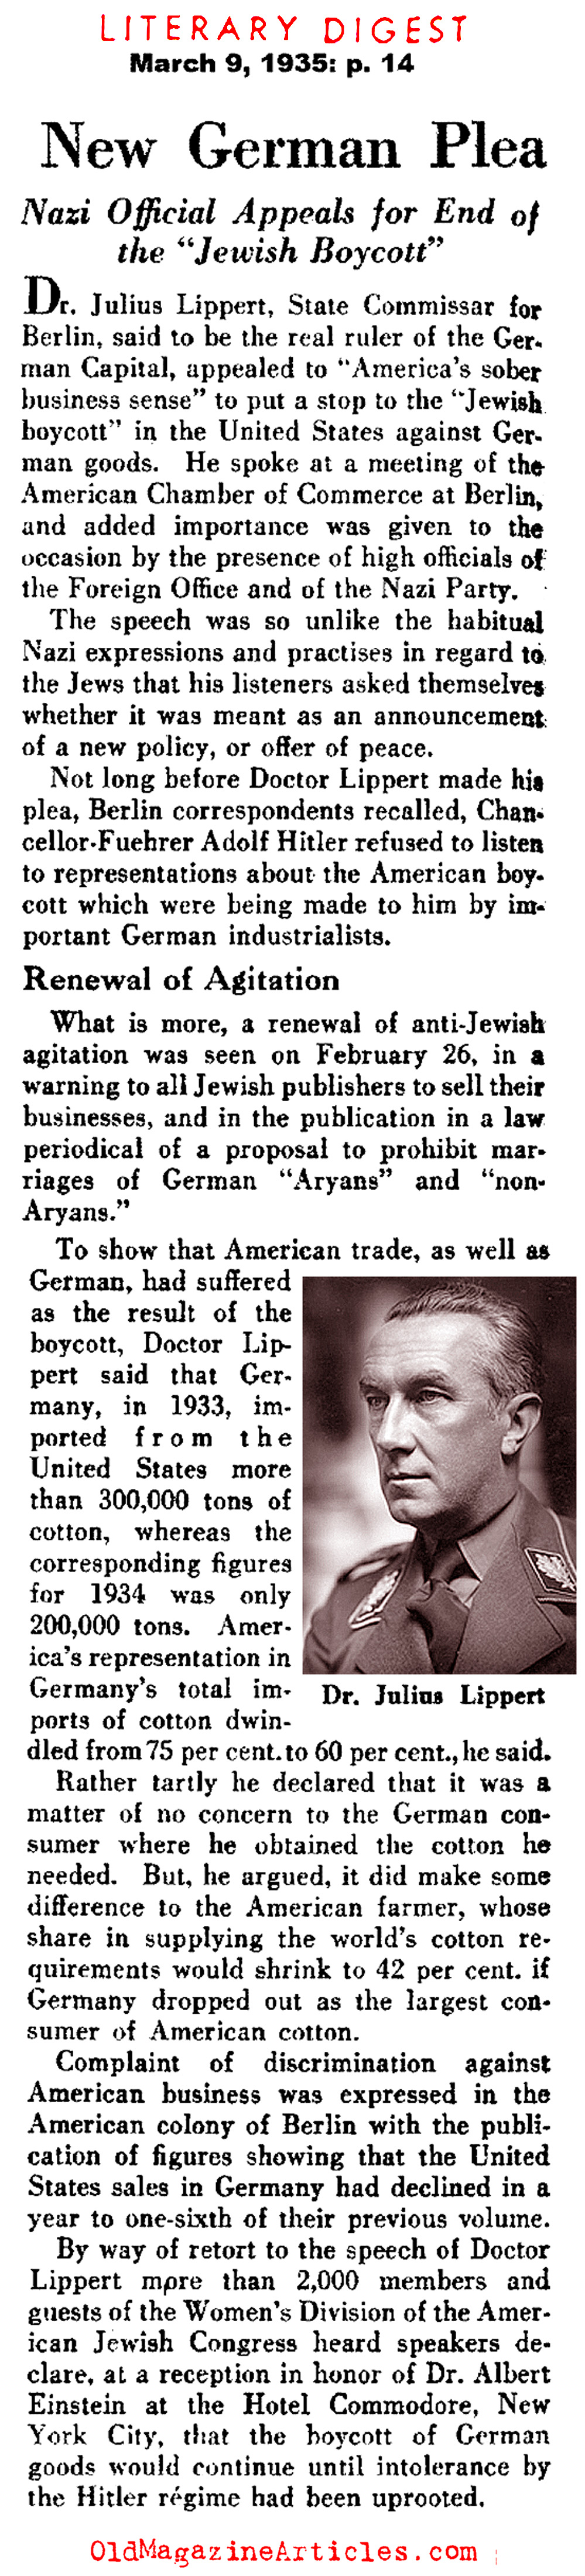 Jewish Americans Boycotted German Products (Literary Digest, 1935)